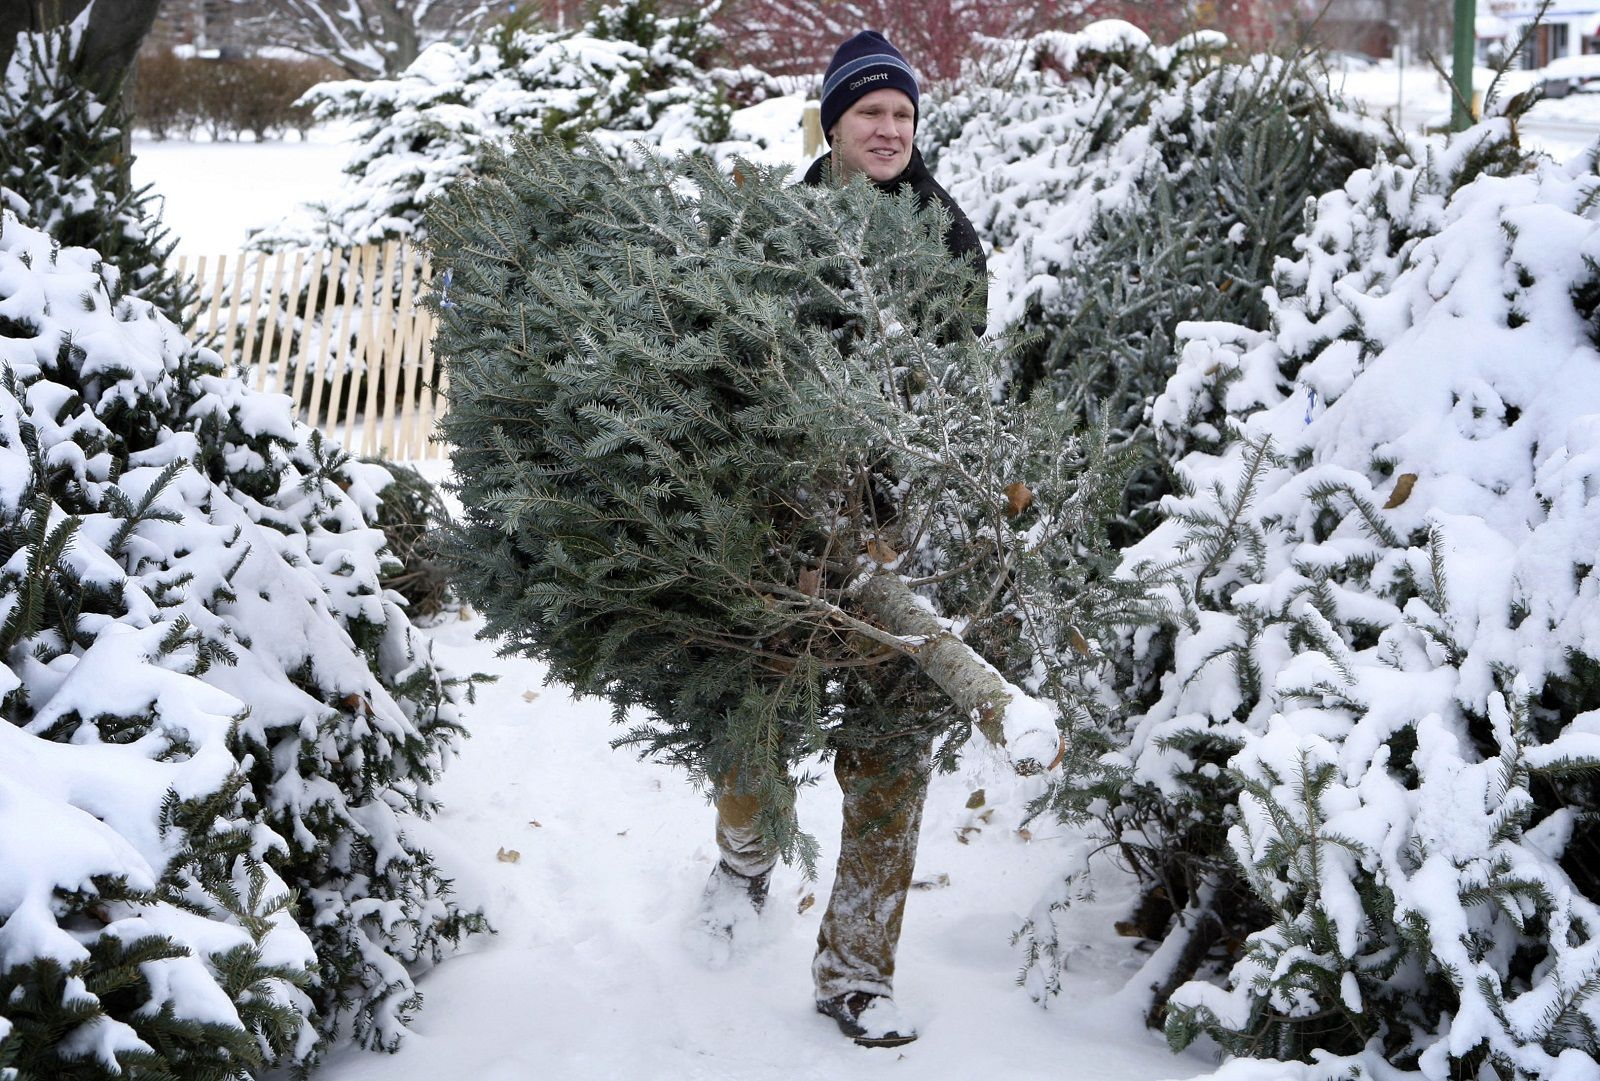 John White carries a Maine-grown Christmas tree at a Rotary Club tree lot Tuesday, Dec. 4, 2007, in South Portland, Maine.  The price of Christmas trees are going up this year, due to a post-great recession shortage of trees. (AP Photo/Robert F. Bukaty)